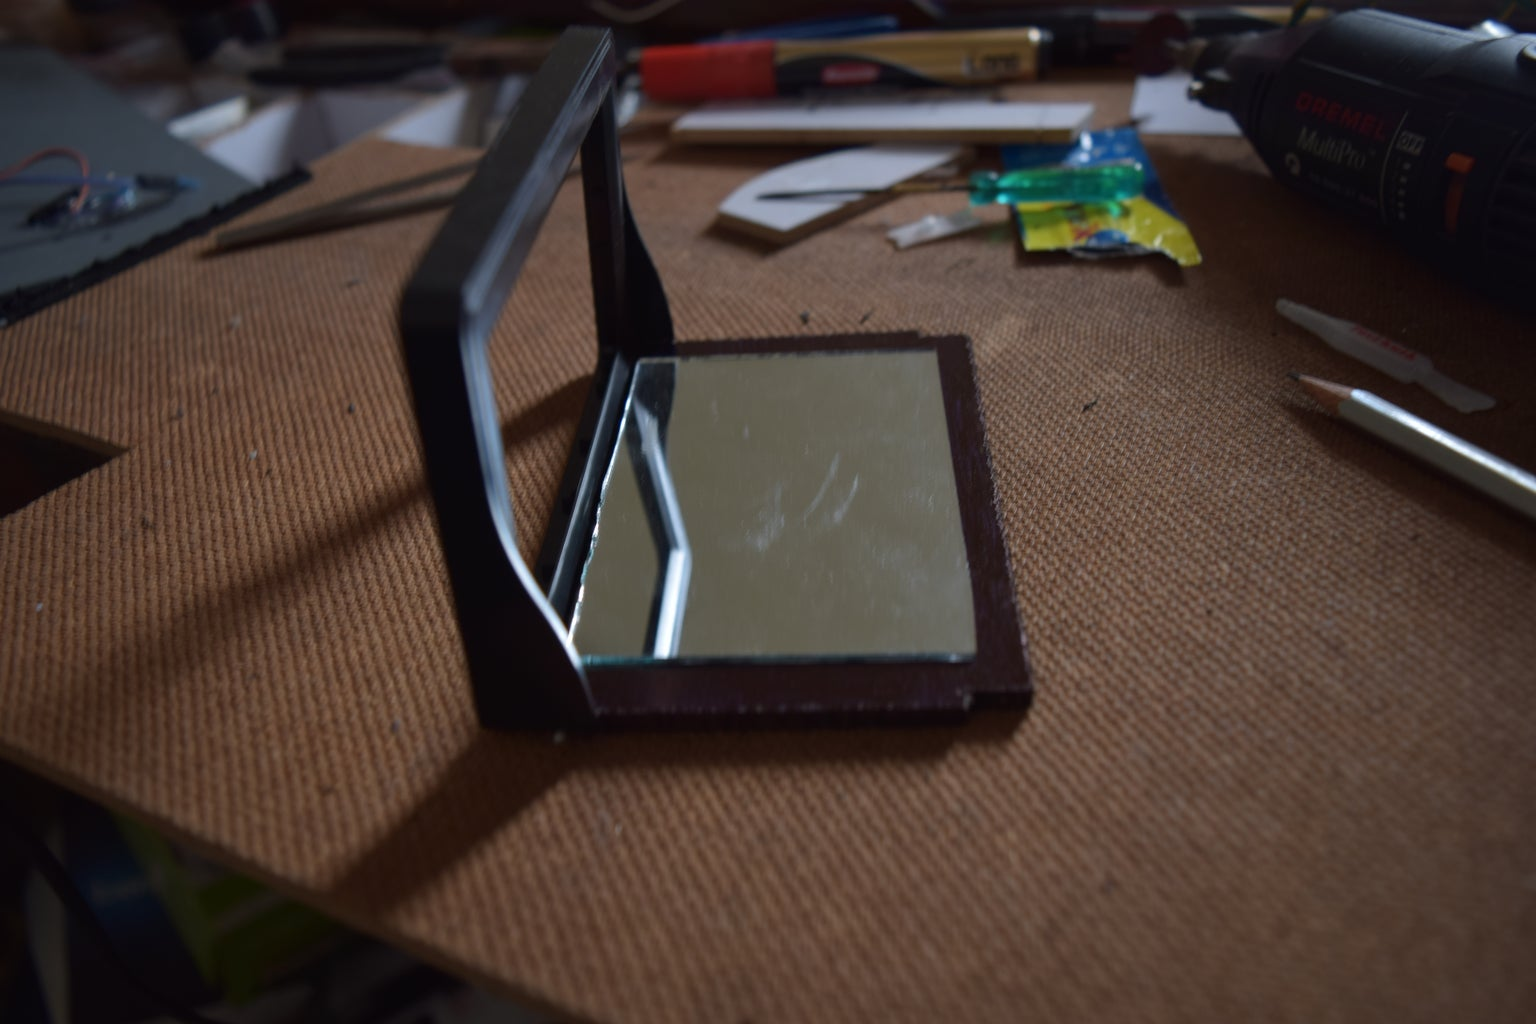 Attaching the Mirror